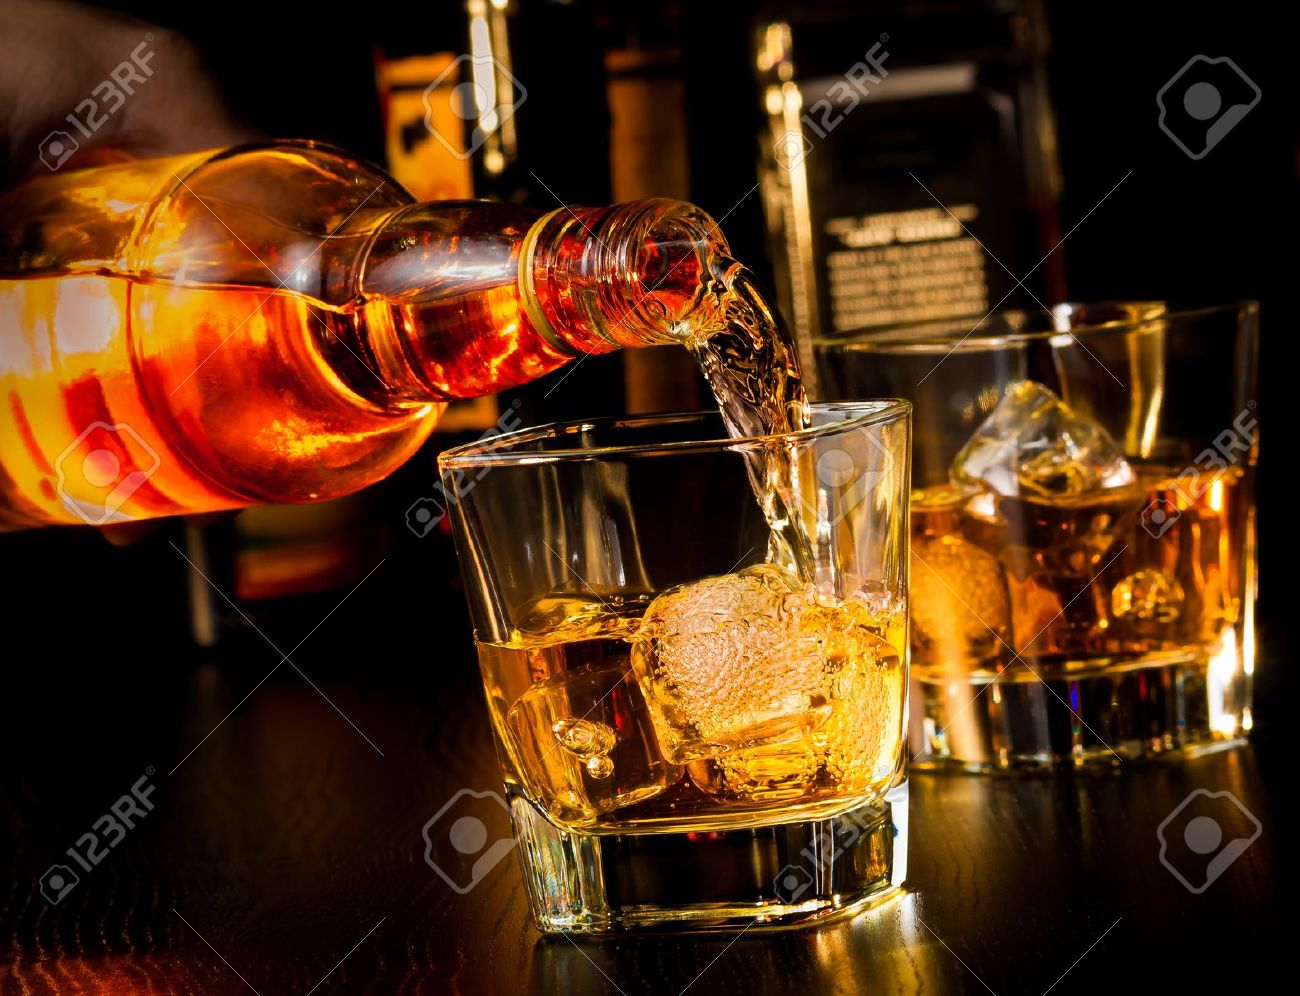 barman pouring whiskey in front of whiskey glass and bottles on wood table - 28755716